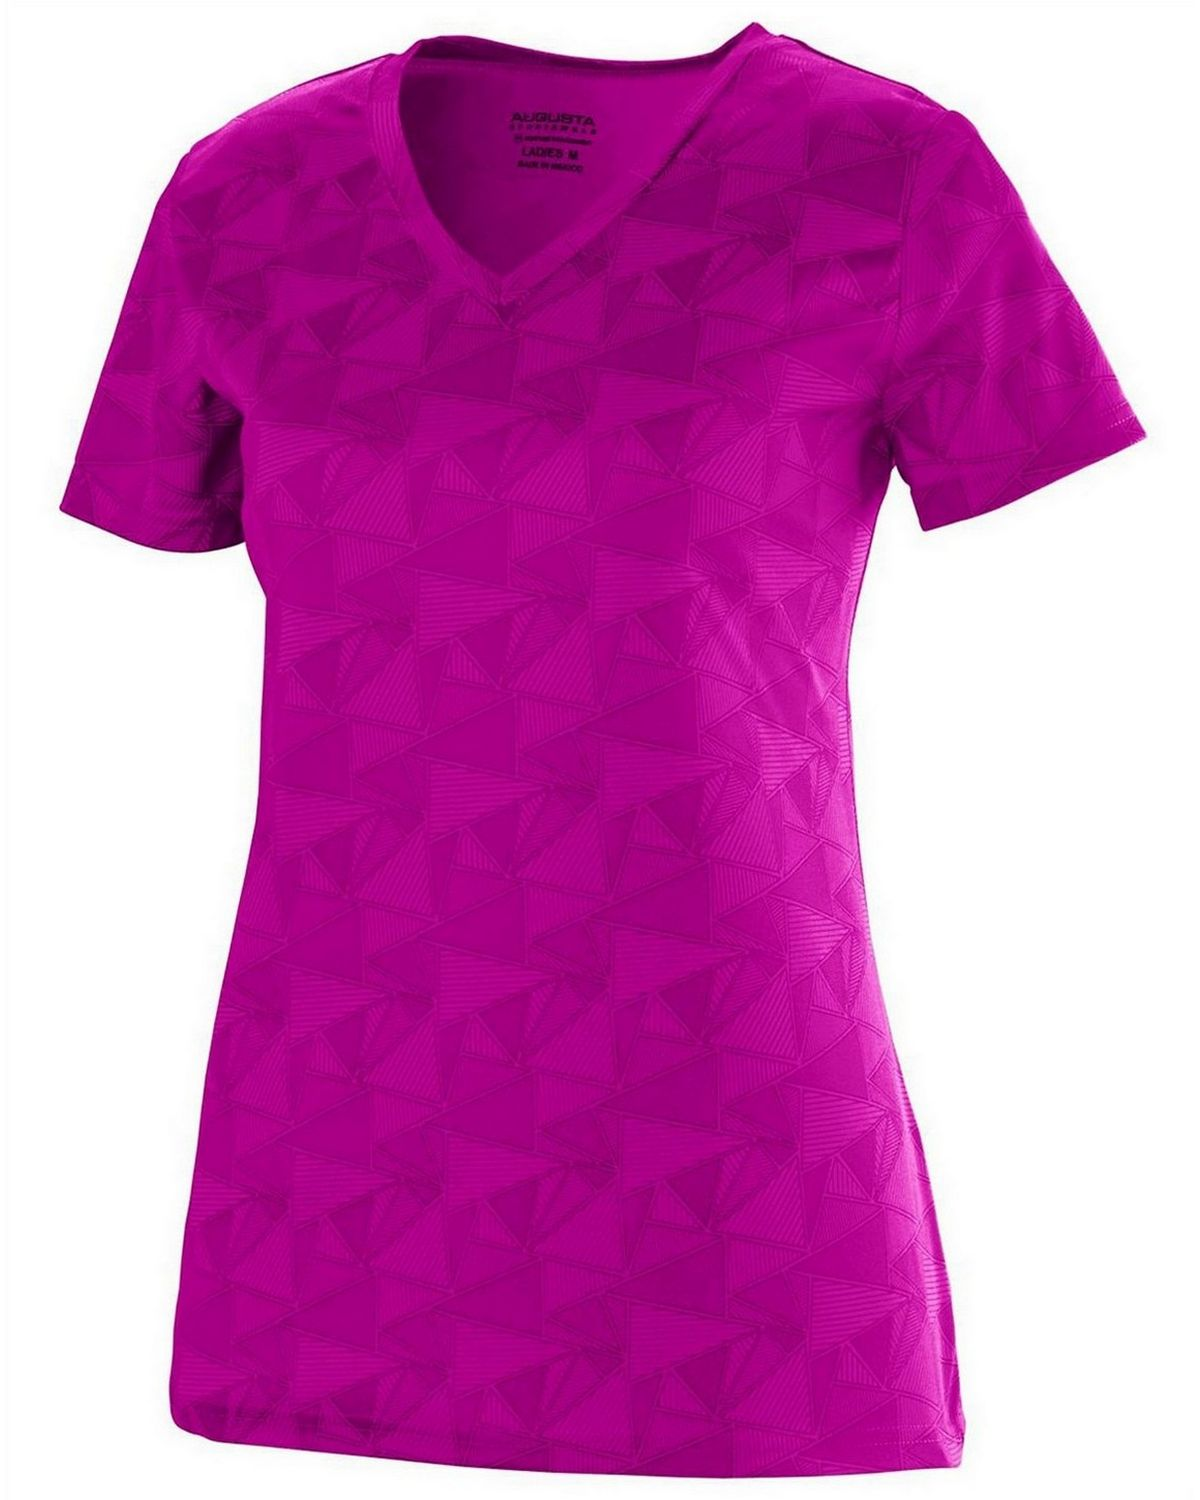 Augusta Sportswear 1792 Short-Sleeve T-Shirt - Power Pink/Black - L 1792